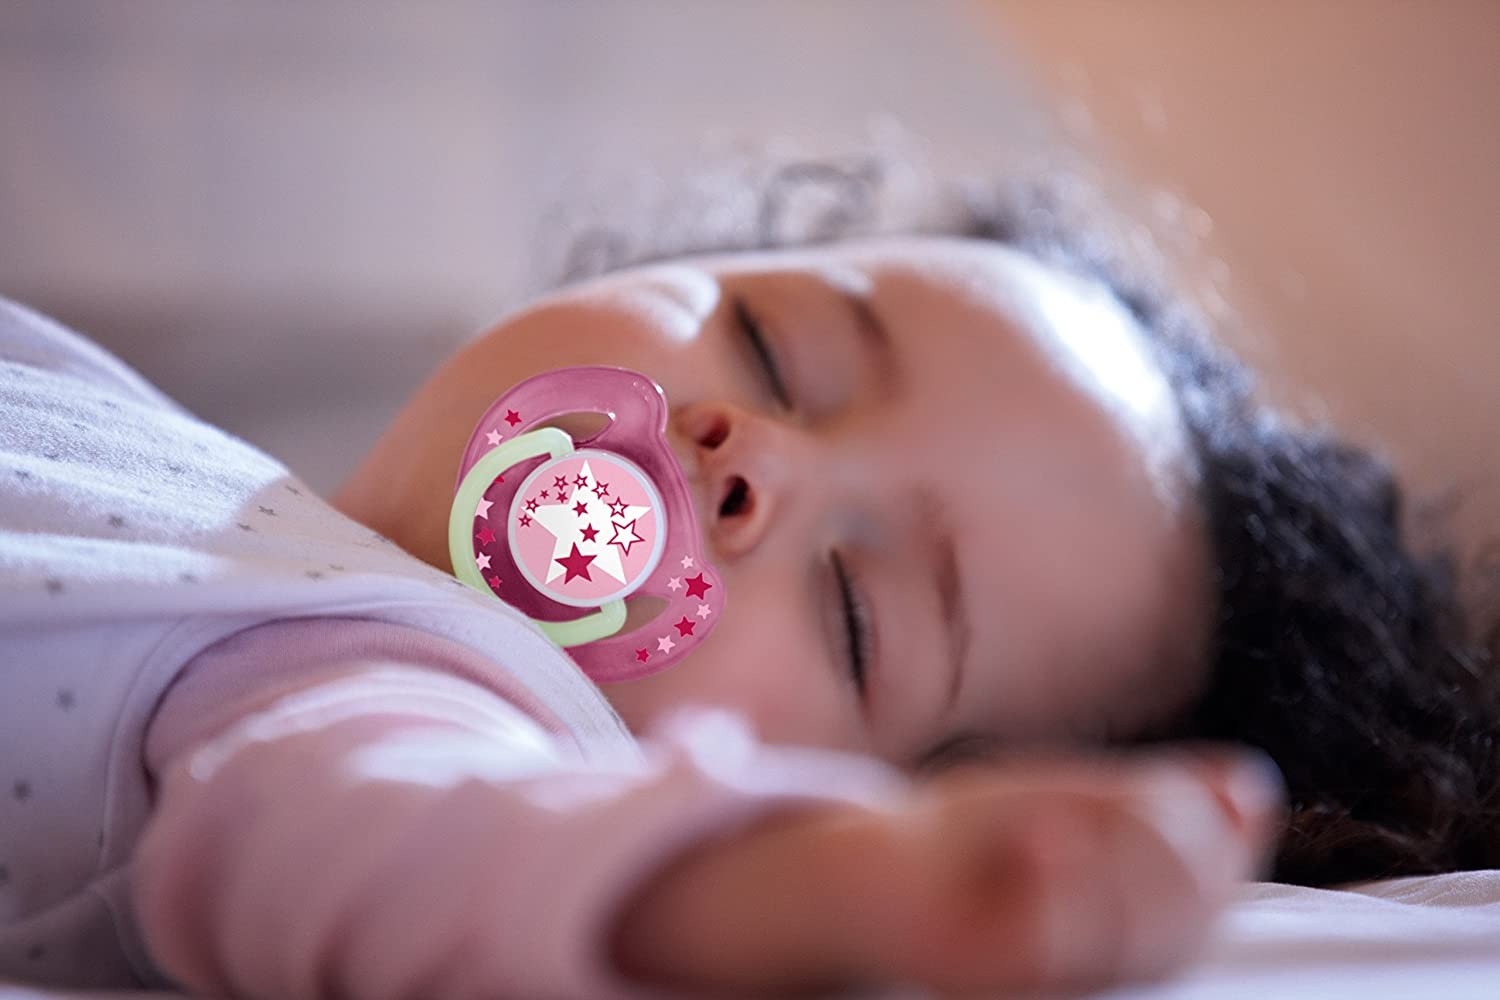 Philips Avent Scf176 24 Pacifier Night Glow In The Dark Pack Of 2 Orthodentic Soother 6 18m Pink Box Contains X Aventnight Time